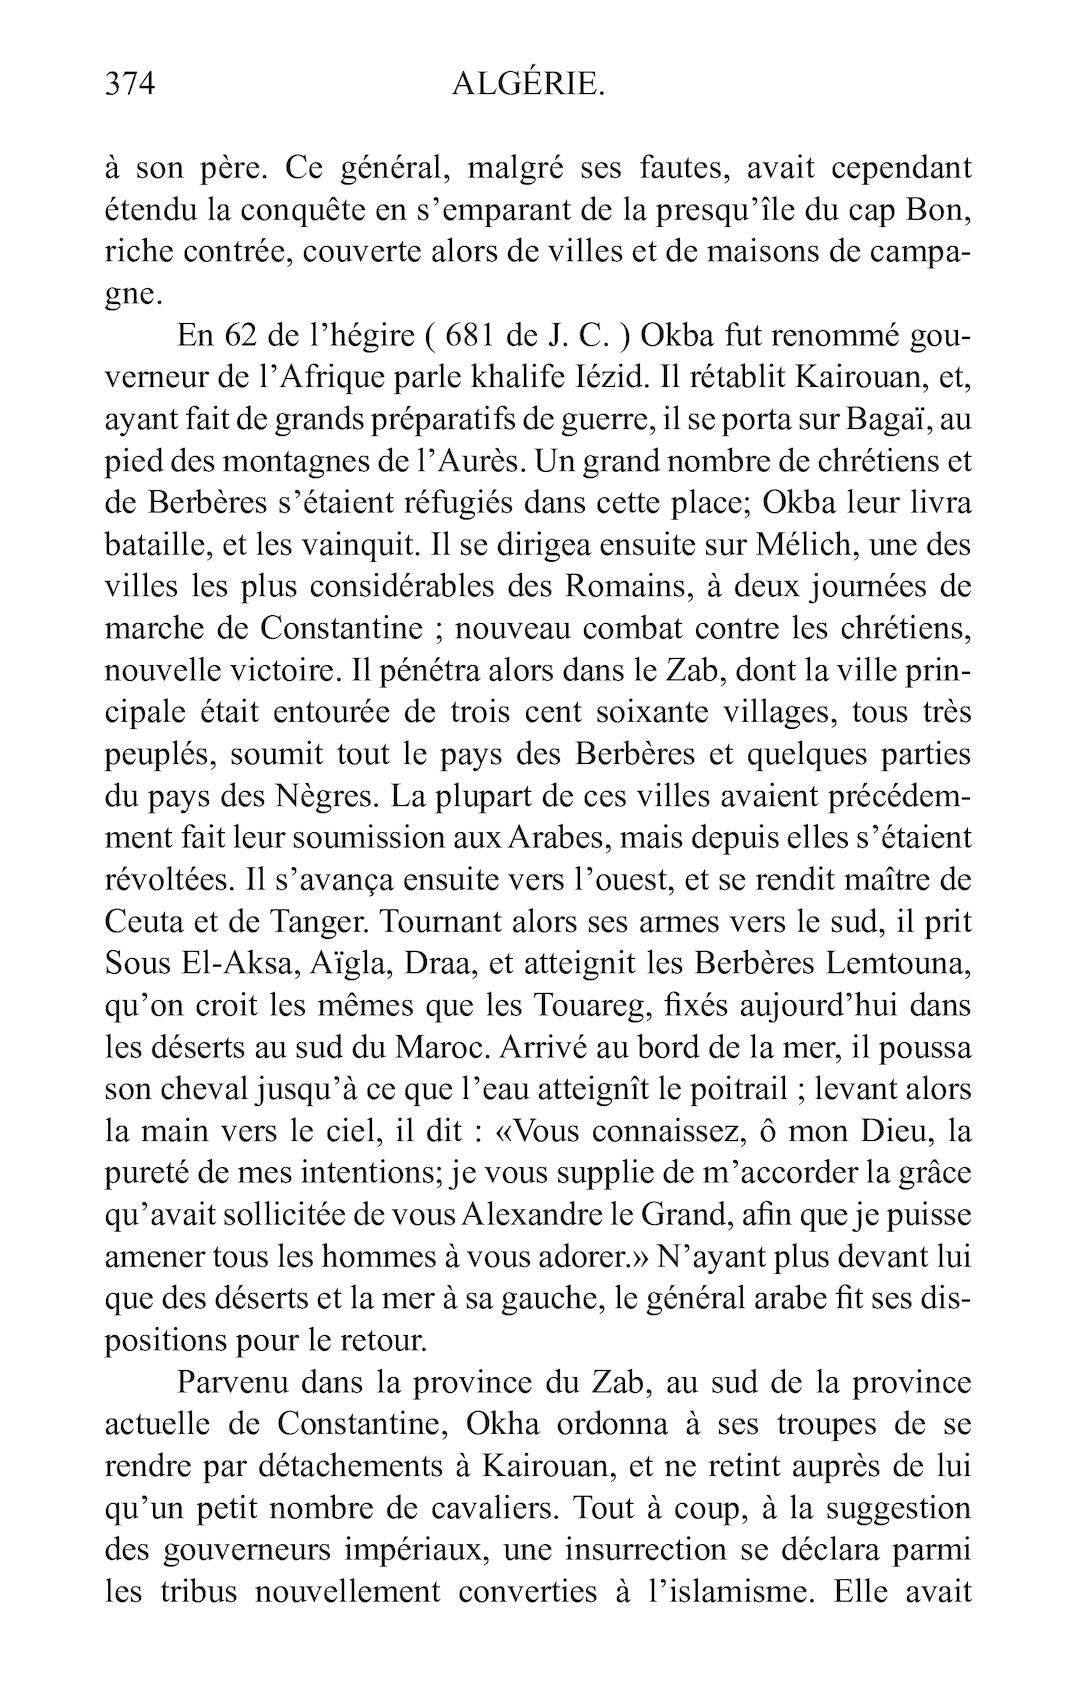 Page 378